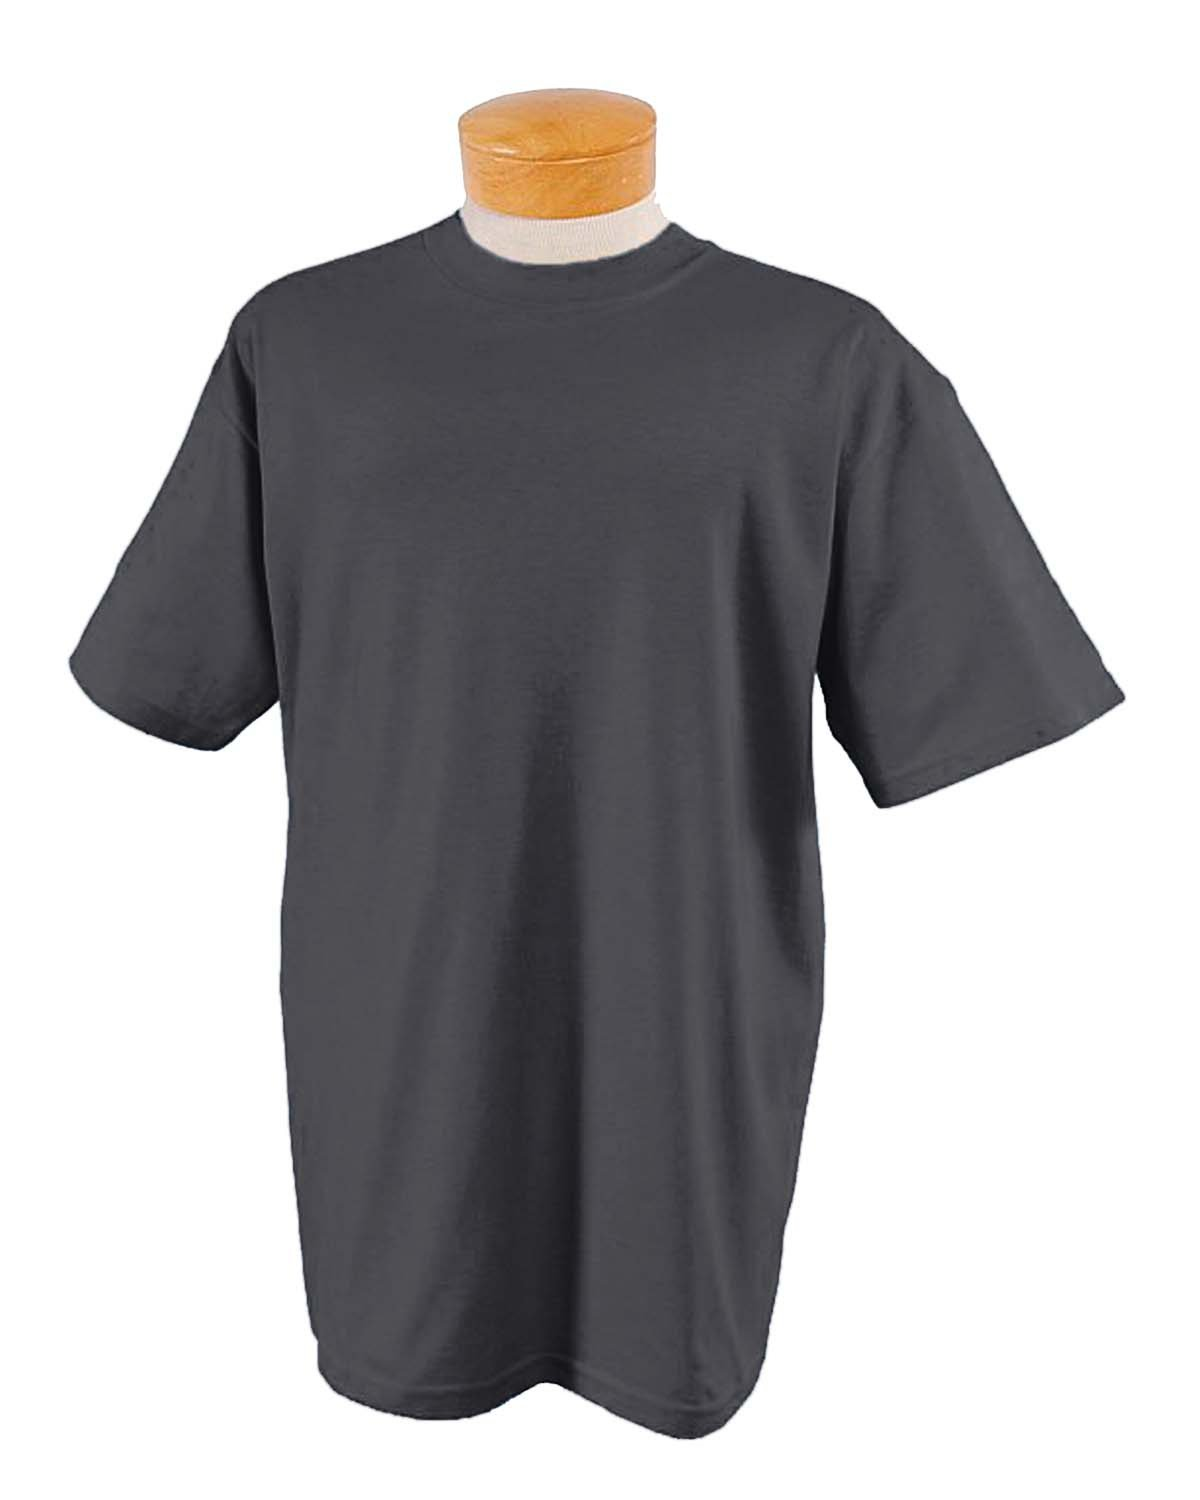 Jerzees Youth DRI-POWER® ACTIVE T-Shirt CHARCOAL GREY